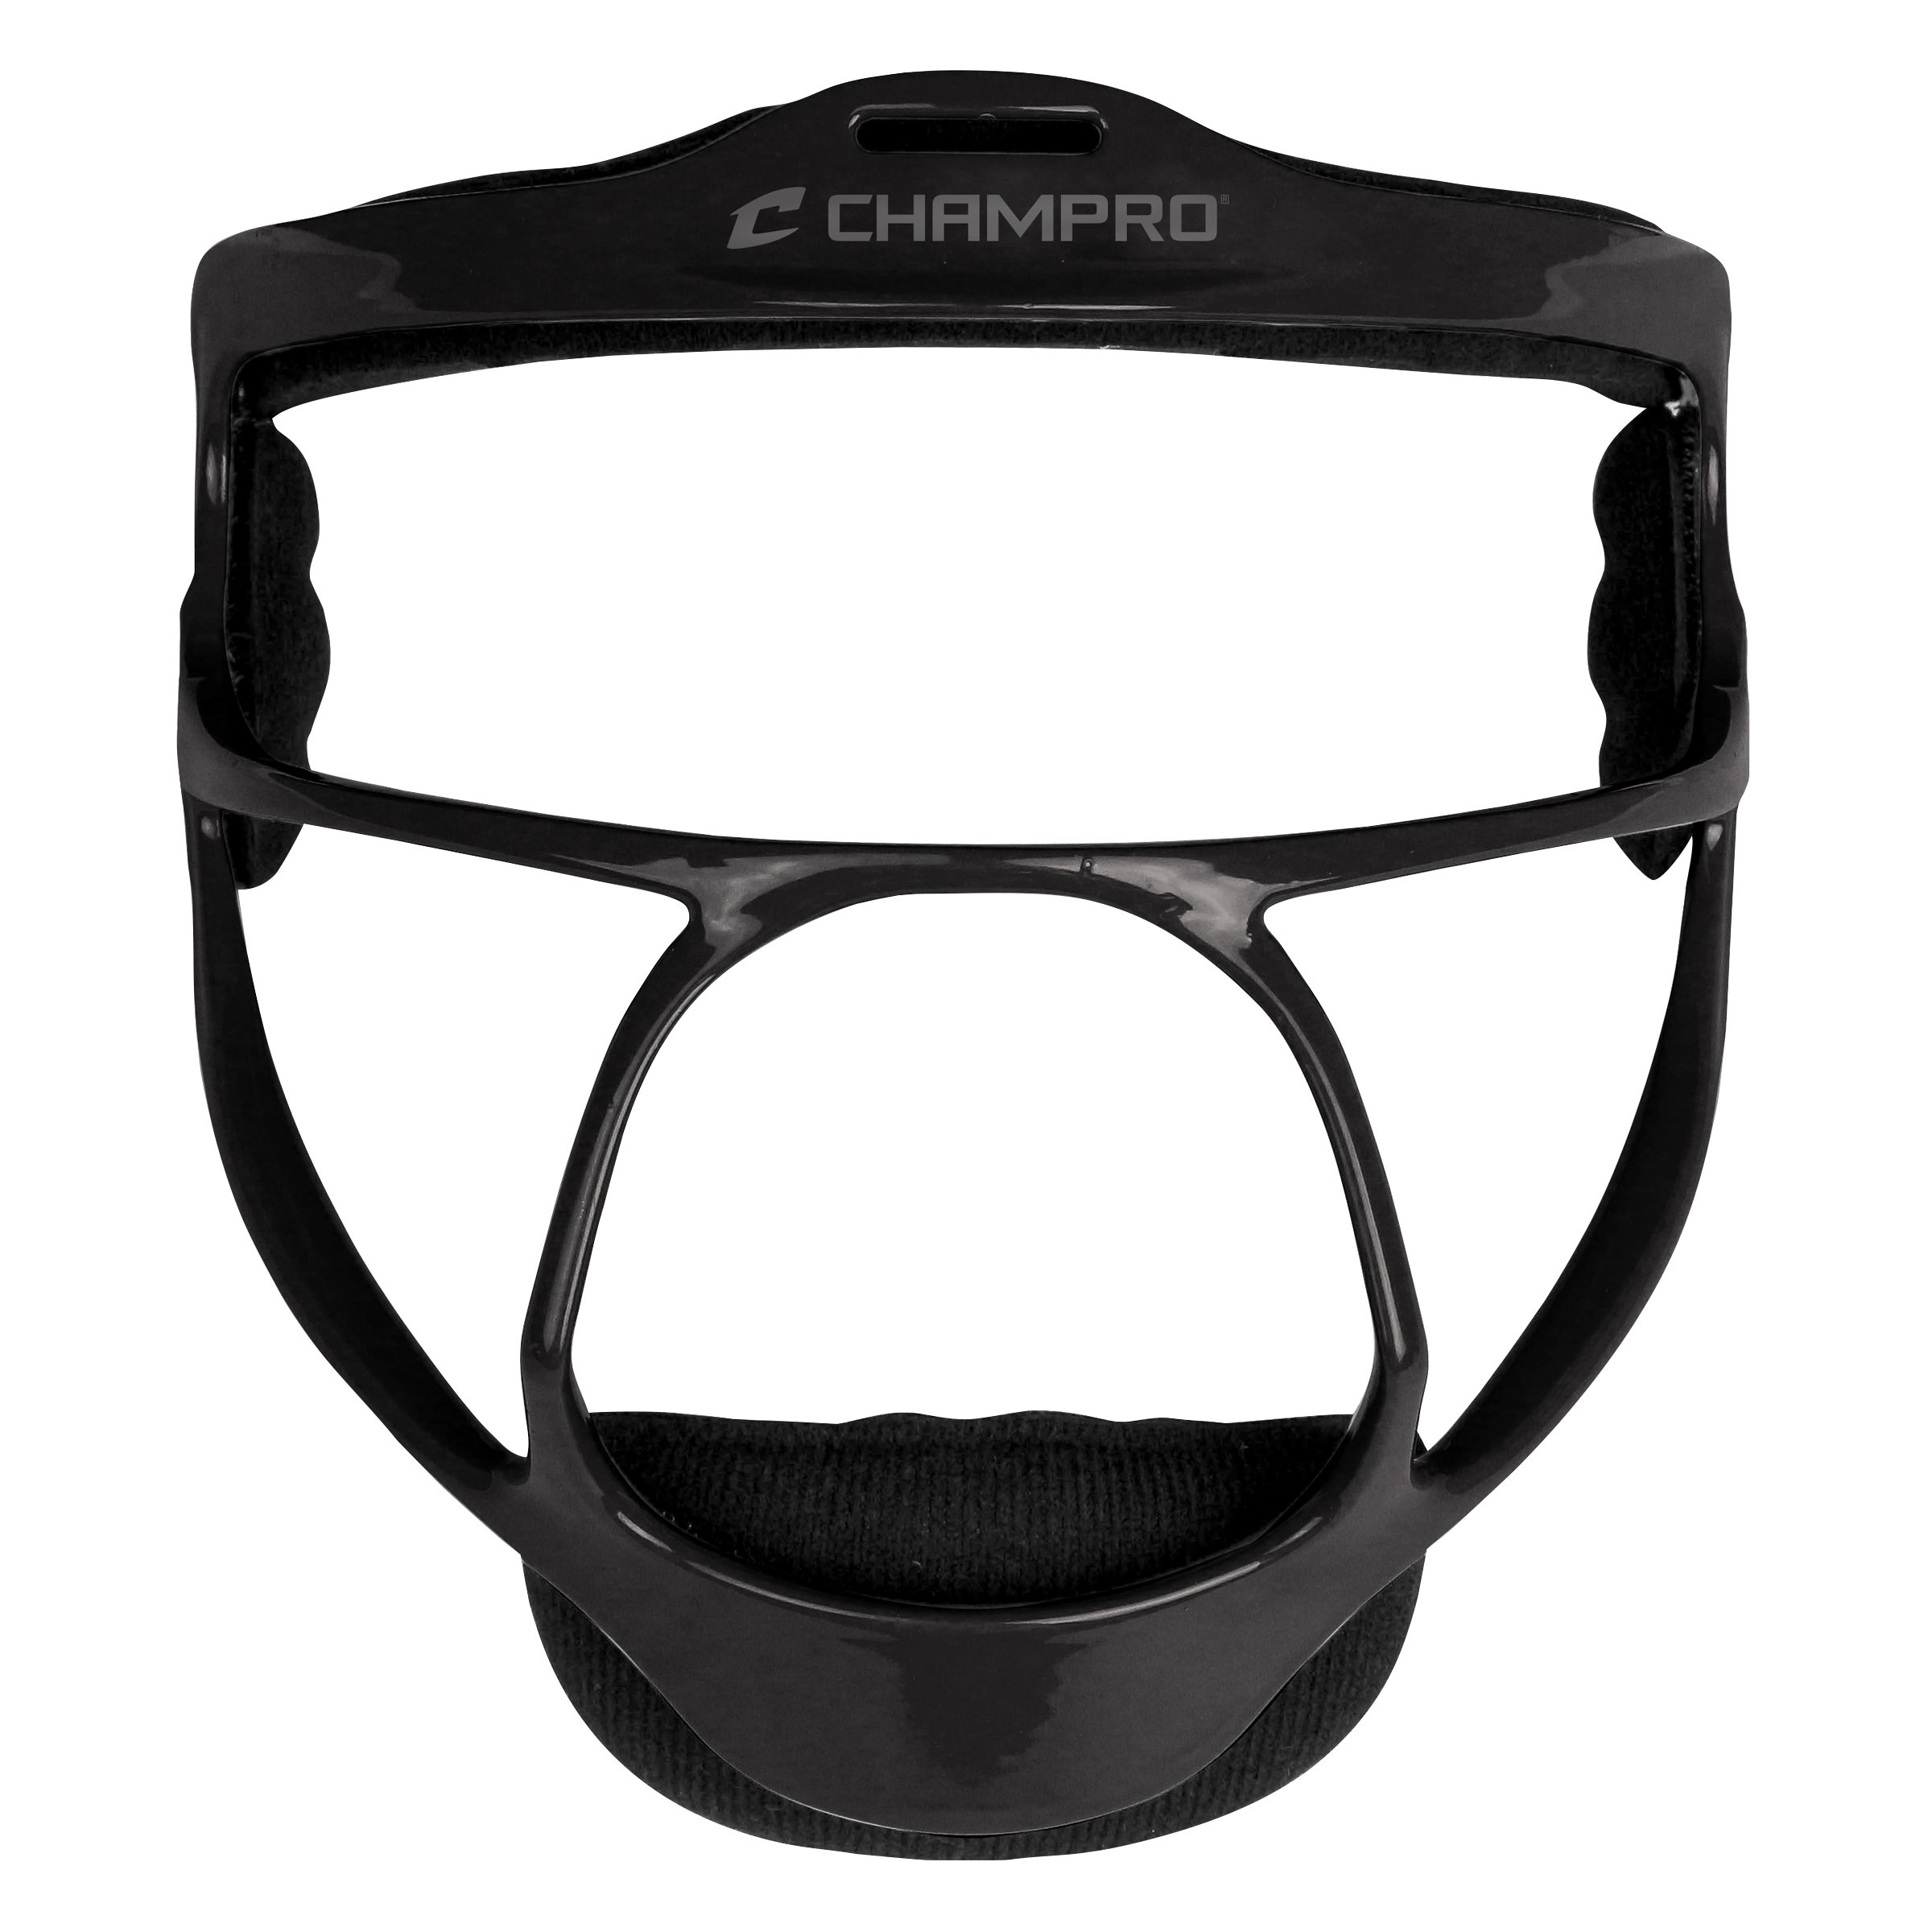 CHAMPRO Rampage Ultralight Softball Fielders Mask by CHAMPRO